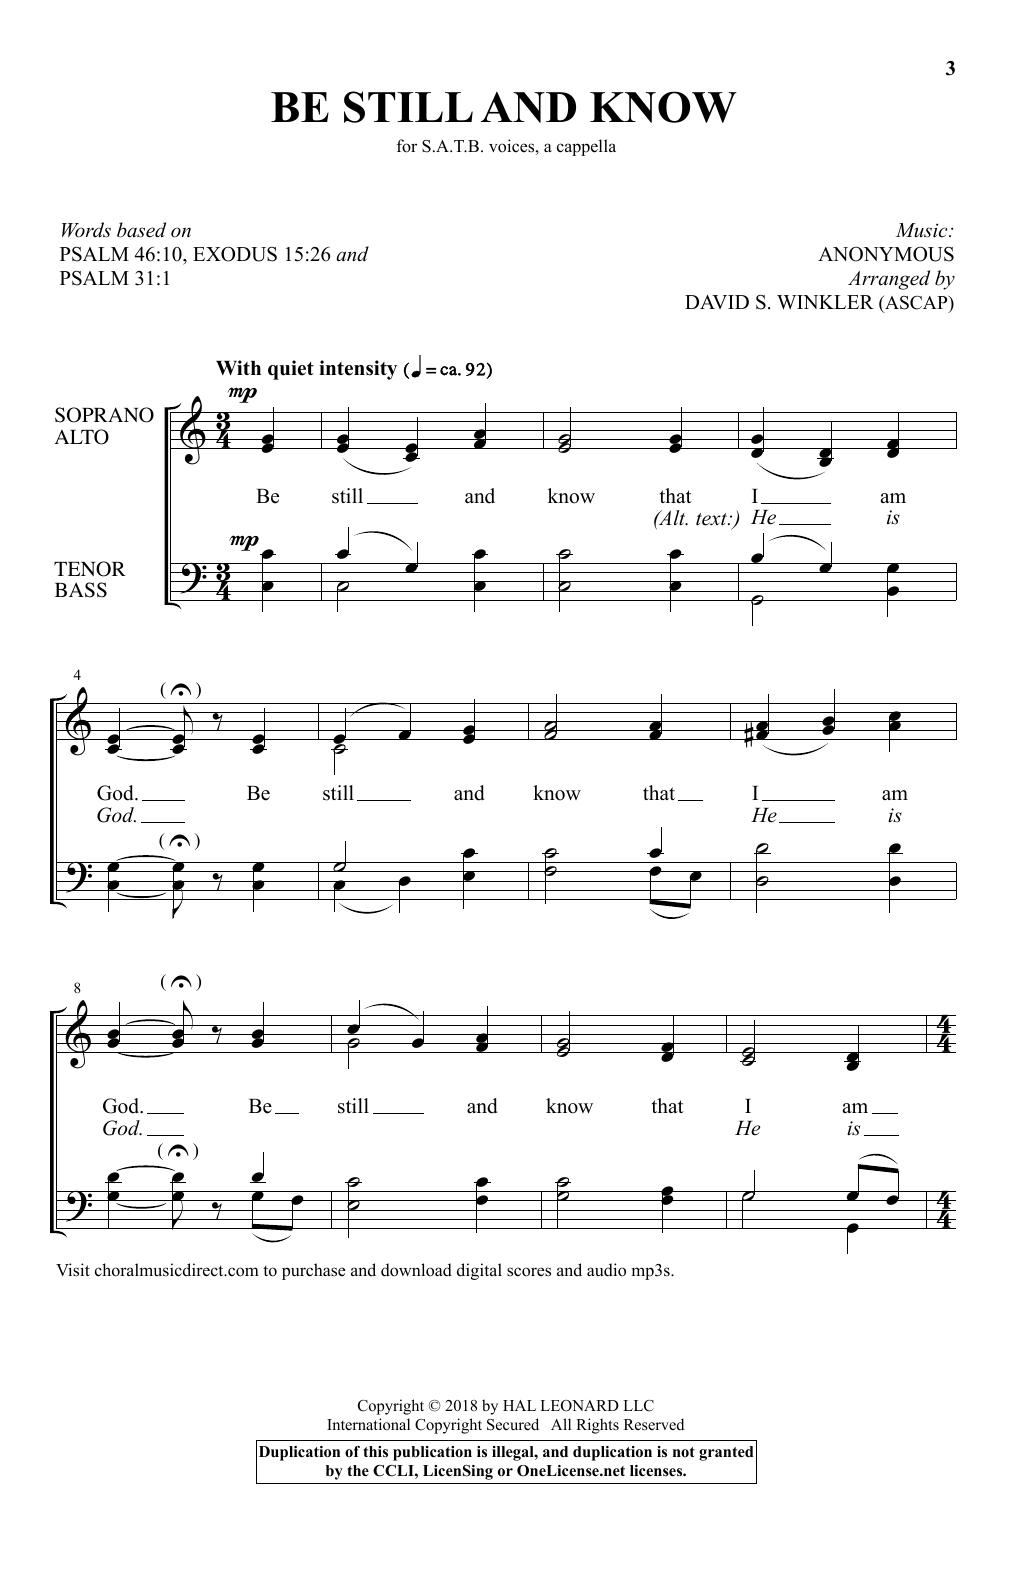 Almost A Cappella (SATB Choir)